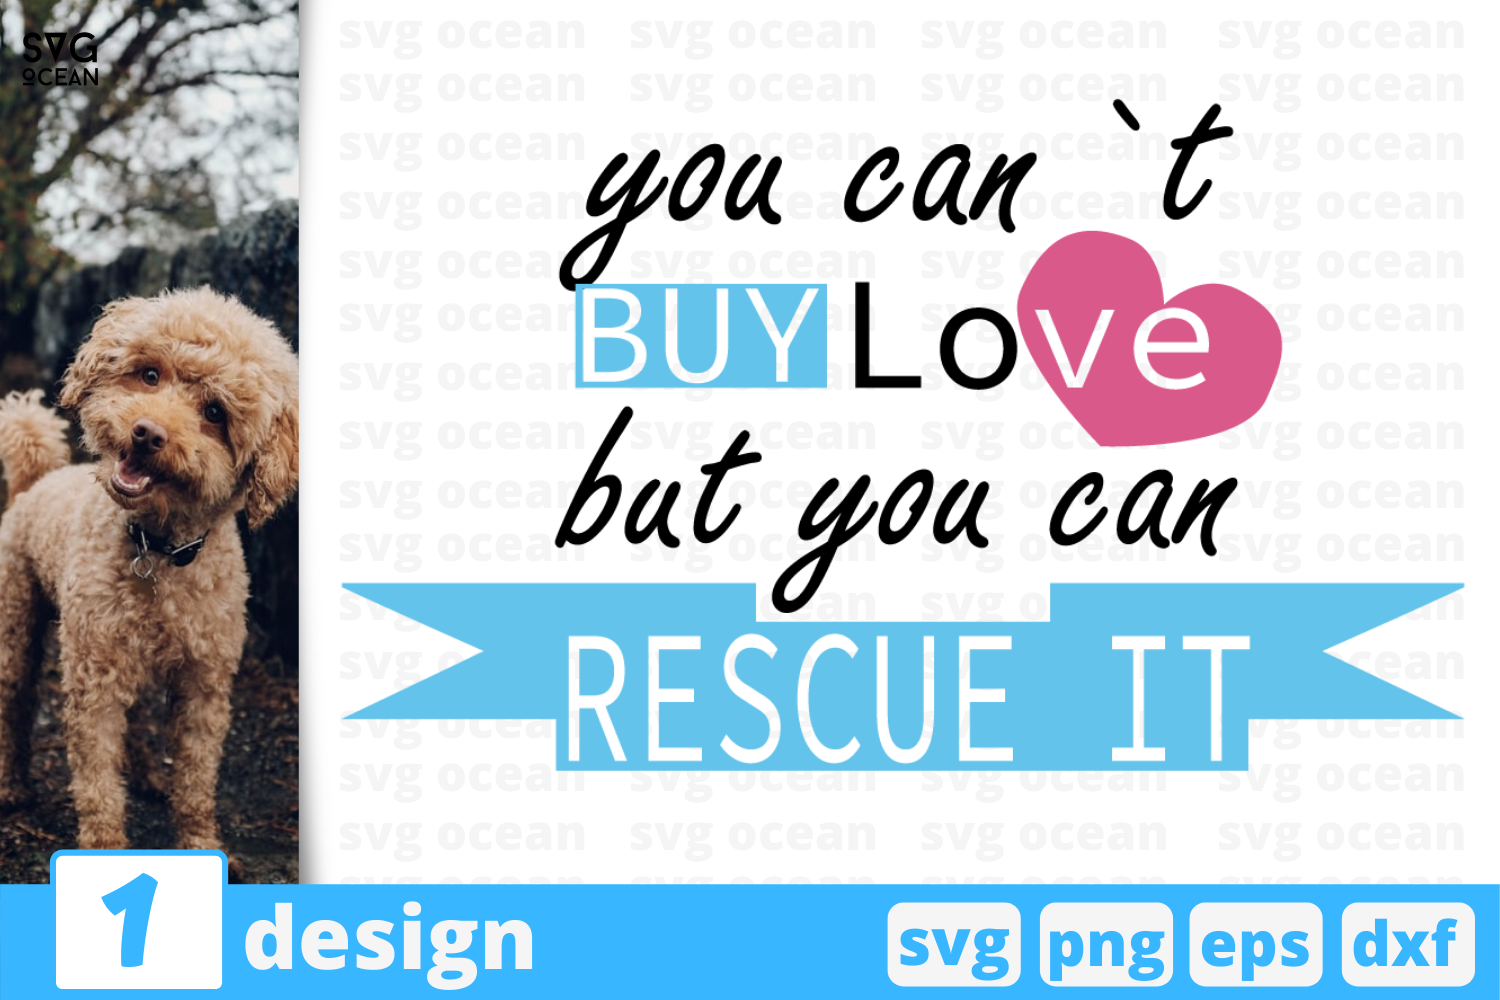 Download Free Rescue It Graphic By Svgocean Creative Fabrica for Cricut Explore, Silhouette and other cutting machines.